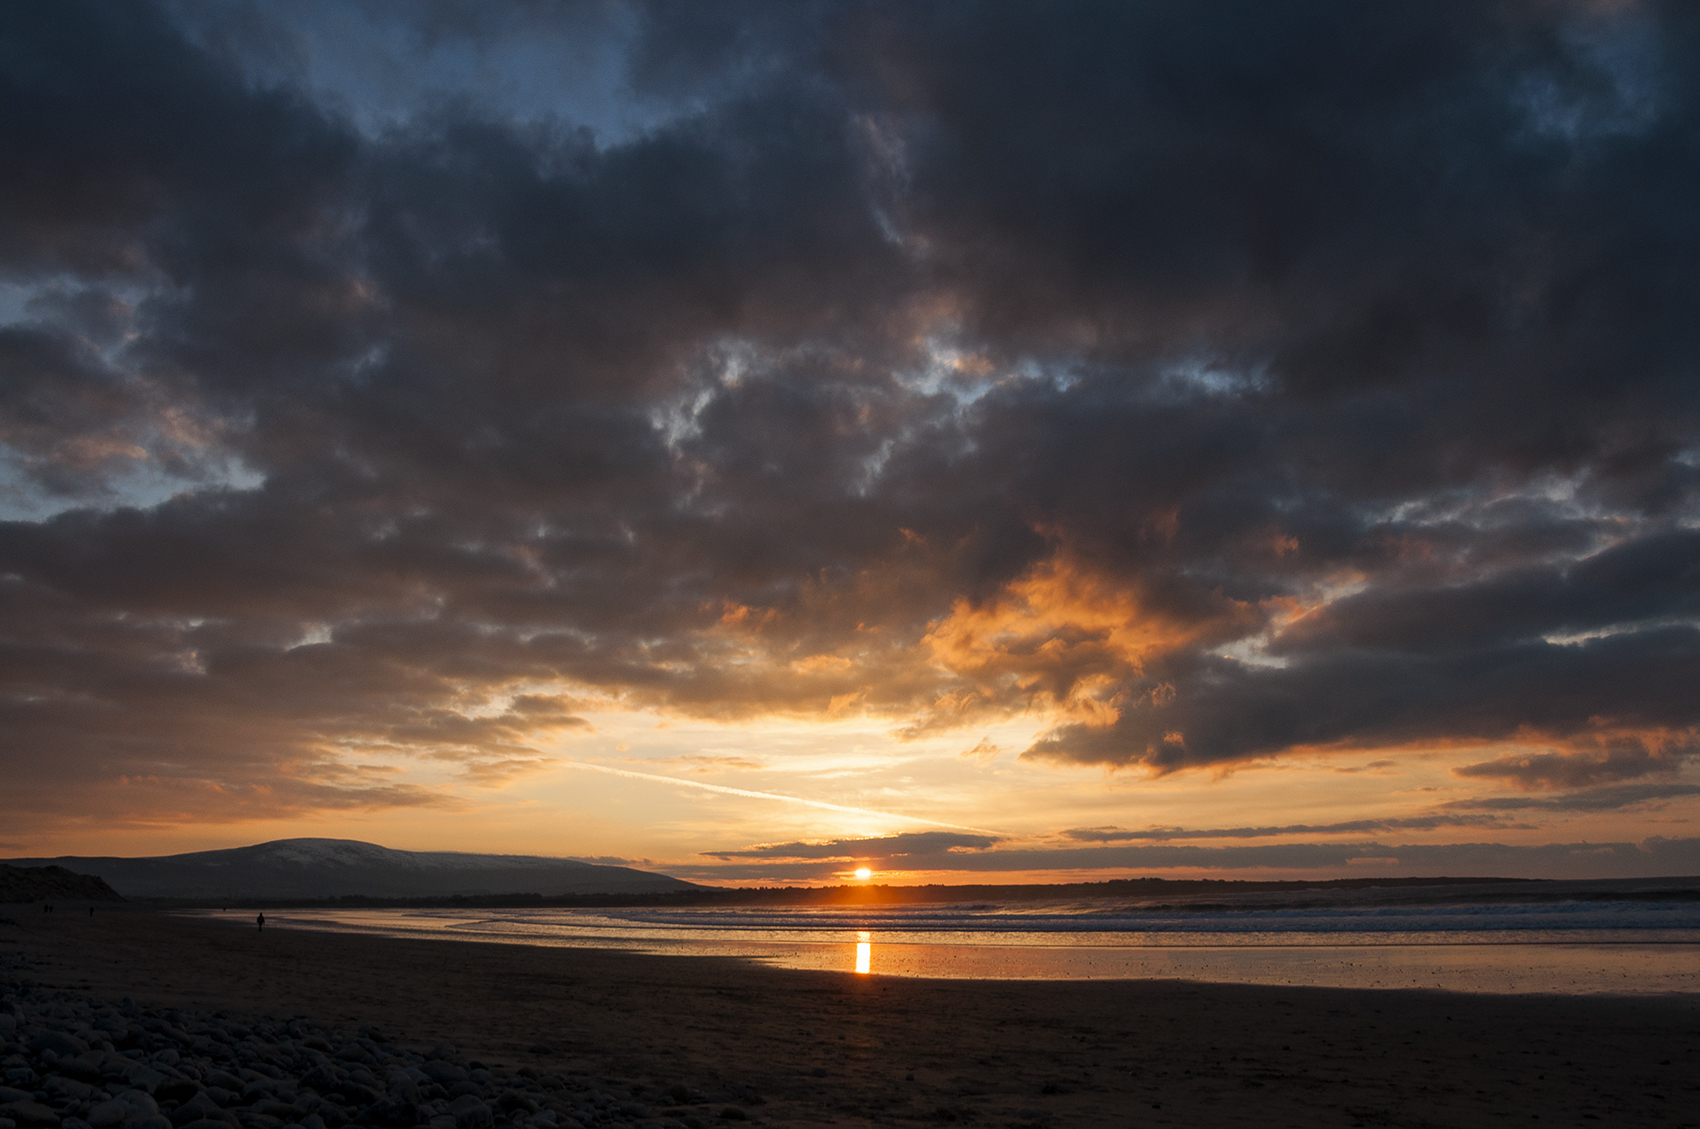 Sunset at Strandhill Beach, Sligo